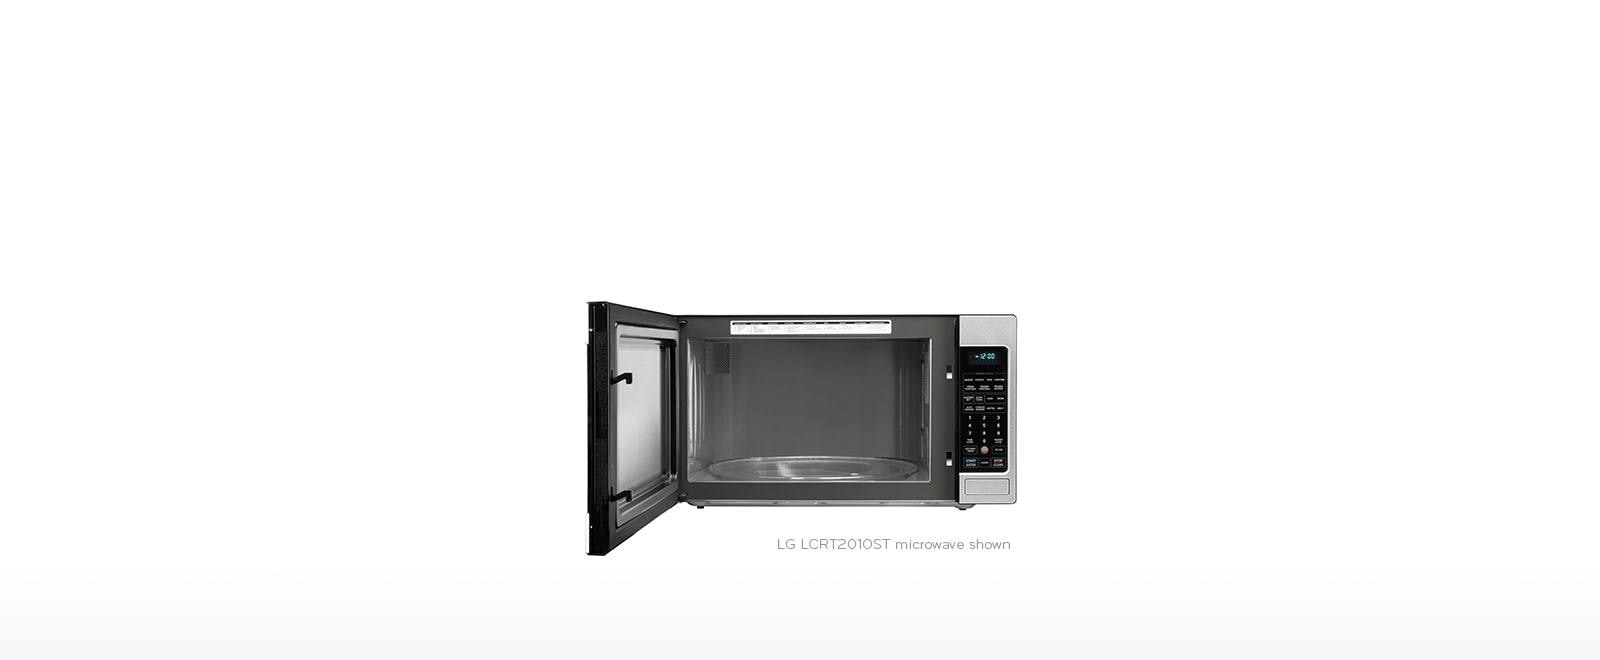 Lg Lcrt1513st 1 5 Cu Ft Countertop Microwave Oven With